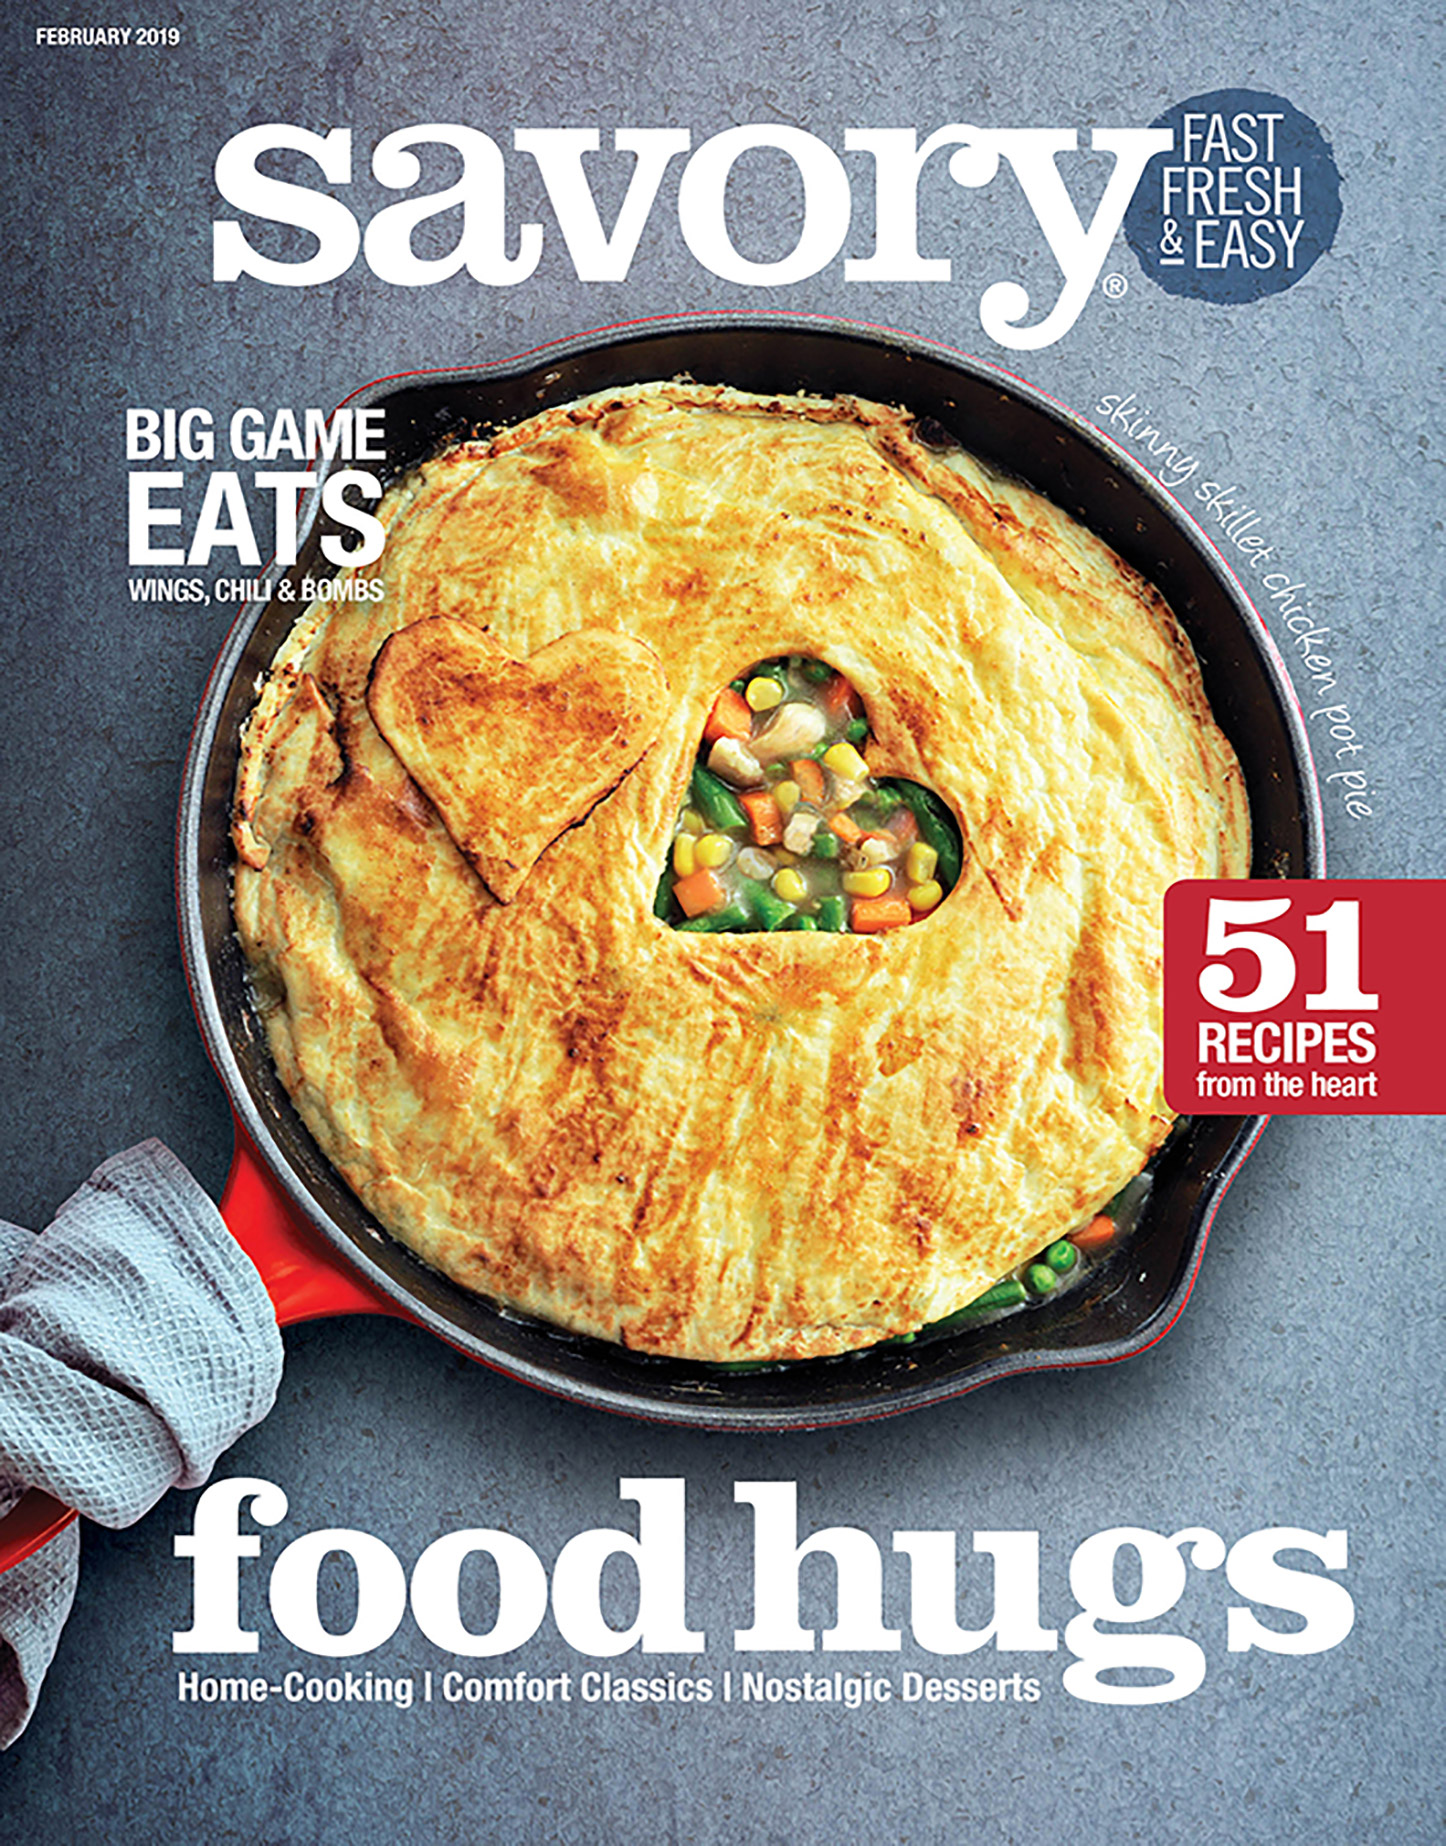 Savory: Fast, Fresh & Easy® Magazine